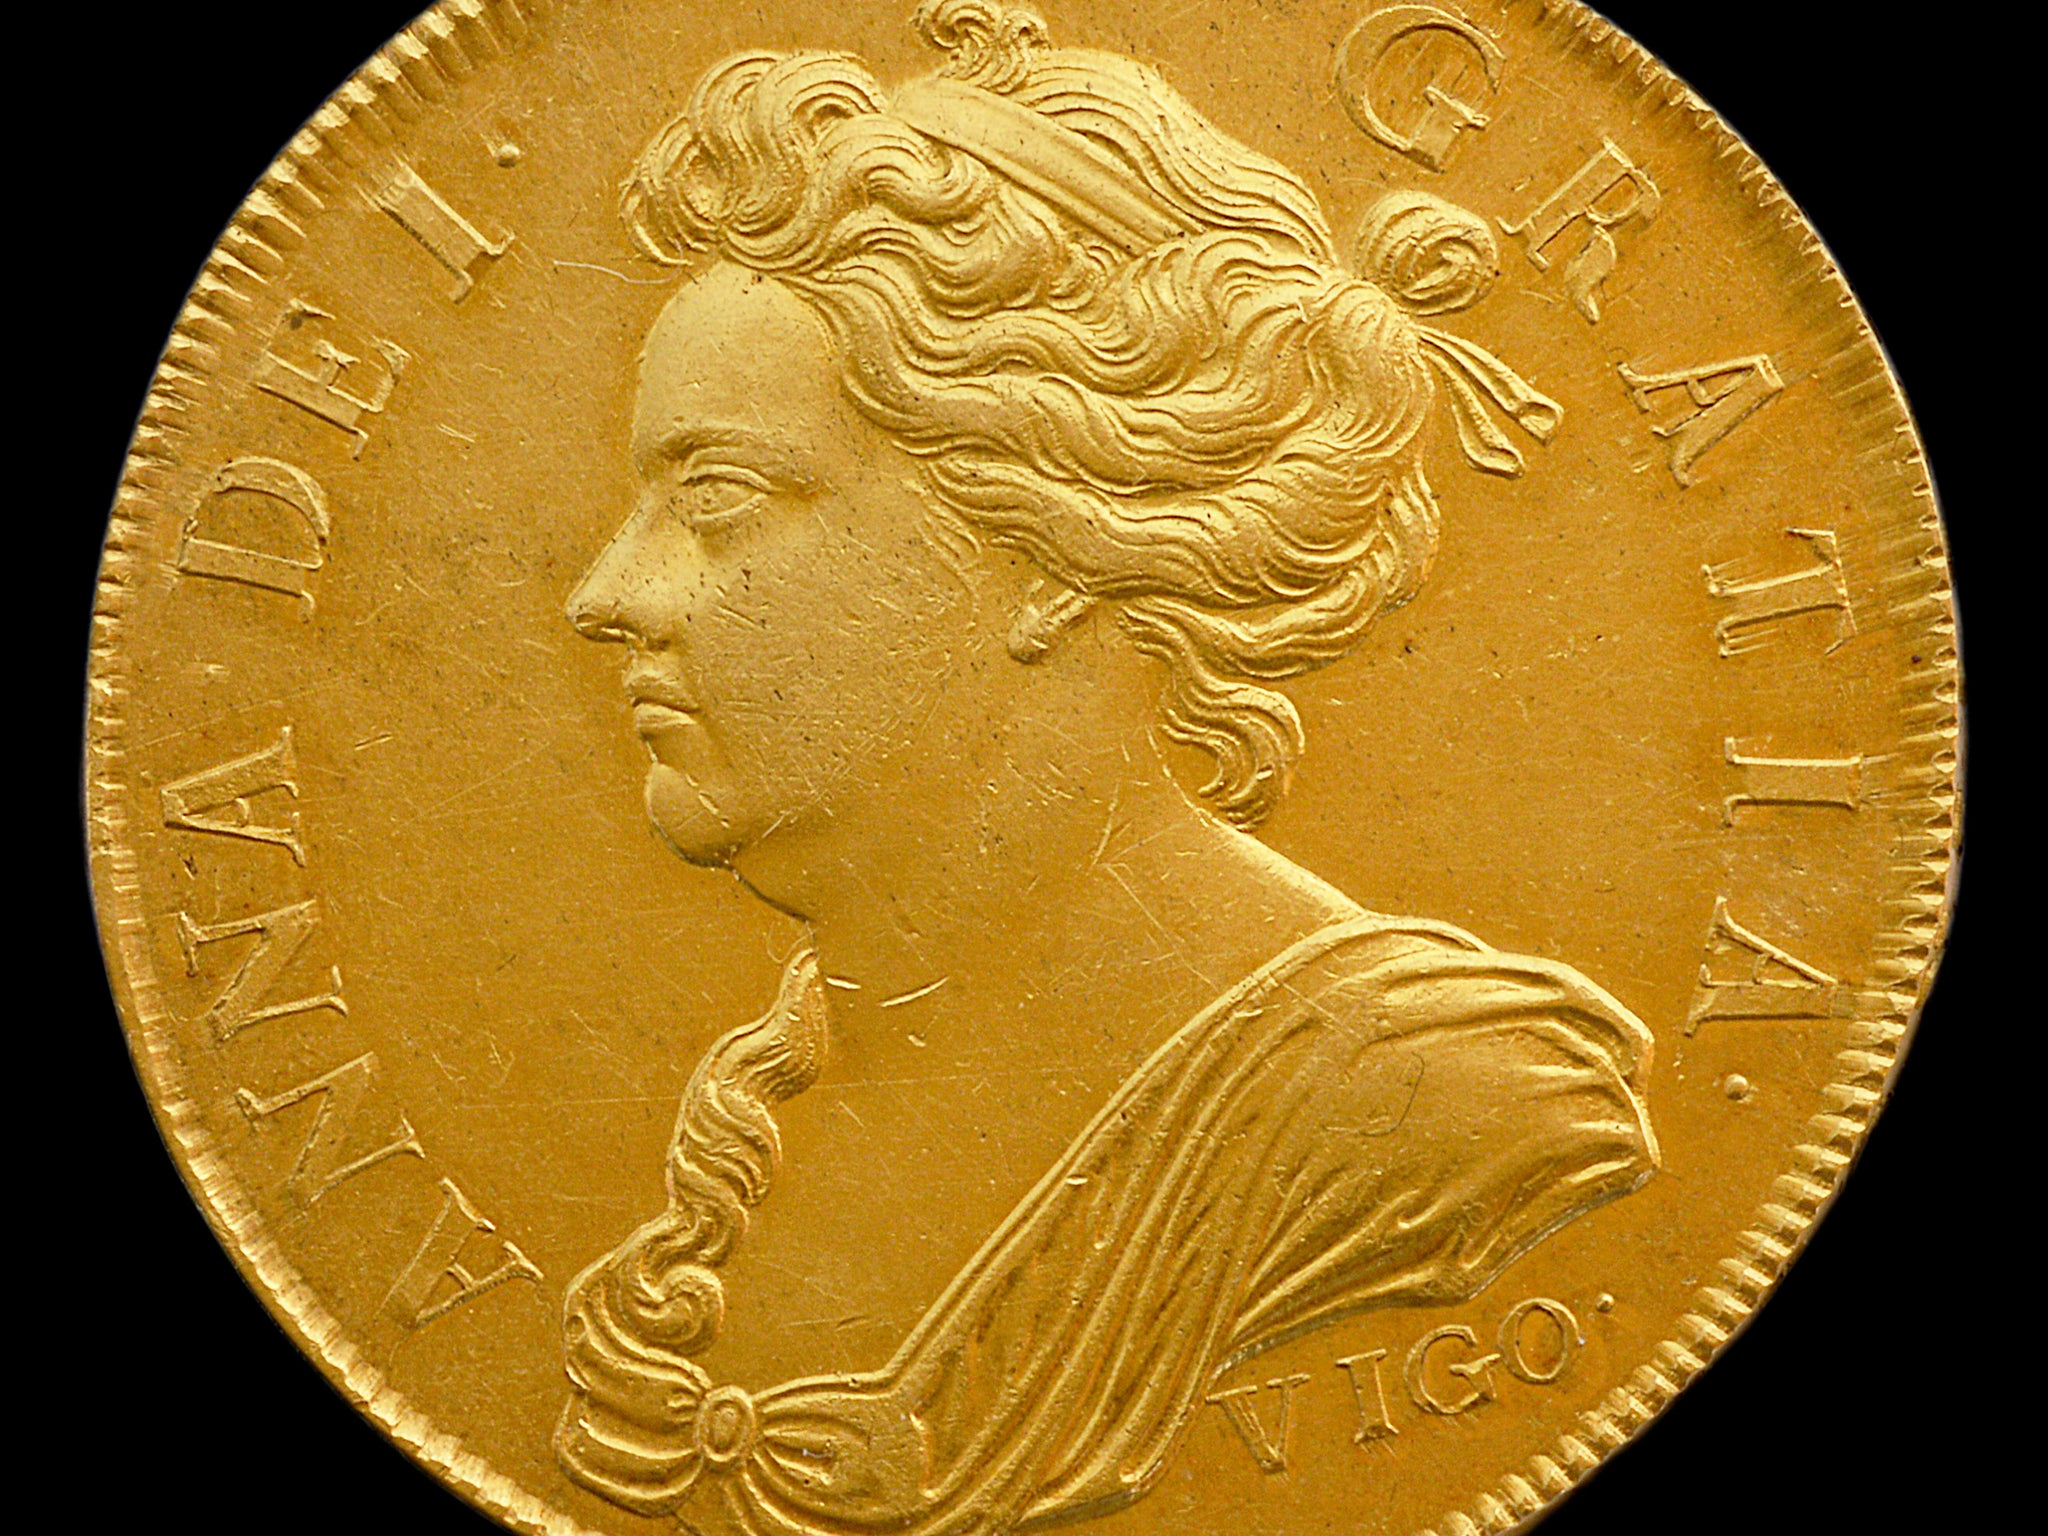 Rare Gold Coin Worth 163 250 000 Found In Toy Treasure Chest The Independent